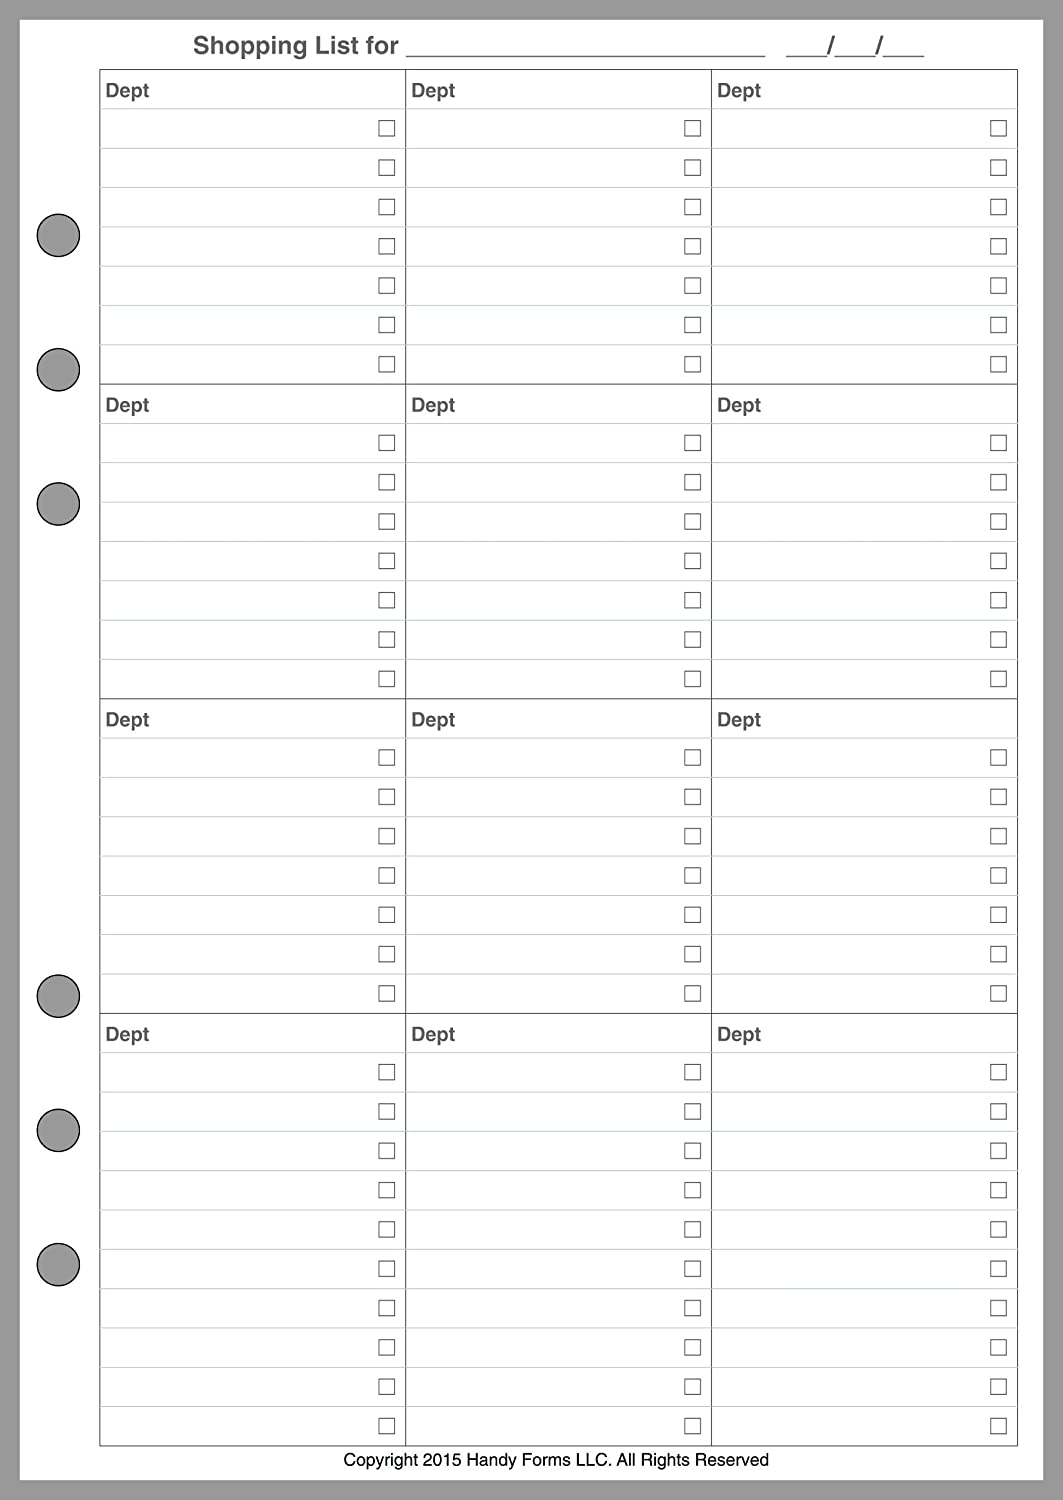 image regarding A5 Planner Printables referred to as A5 Sizing Toward Do Record Planner webpages, Sized and Punched for 6-Ring A5 Notebooks through Filofax, LV (GM), Kikki K, TMI, and other individuals. Sheet Dimensions 5.83\